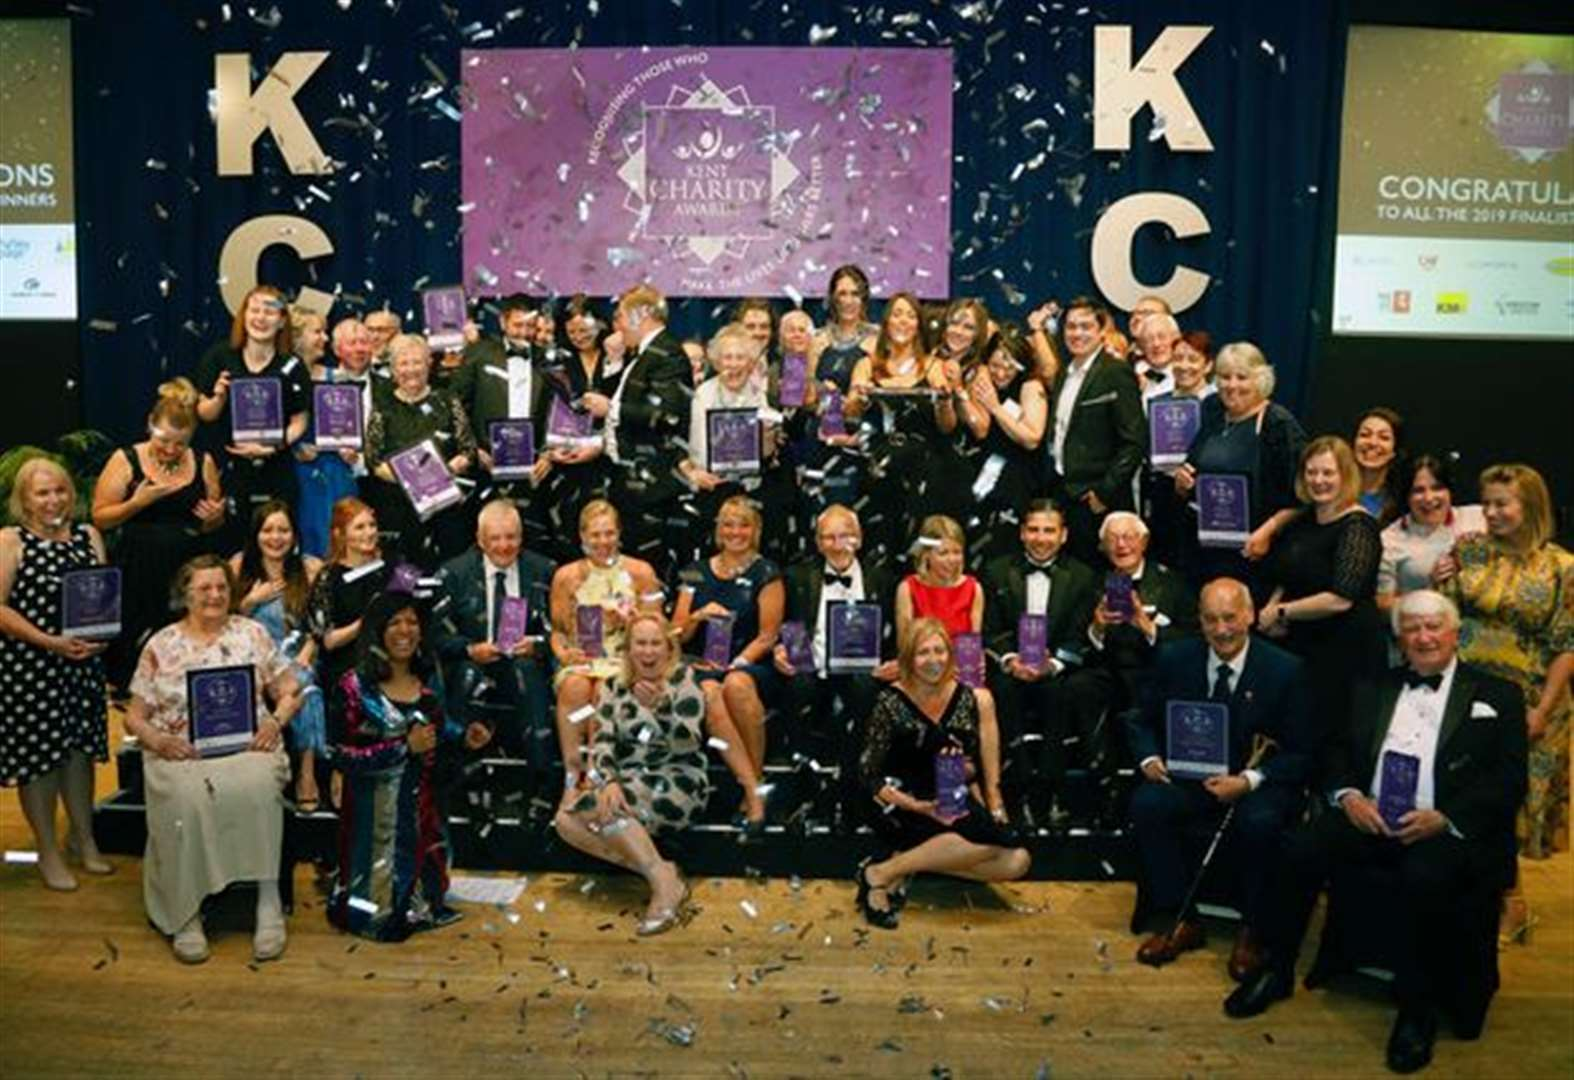 Who has been crowned the Kent Charity of the Year?